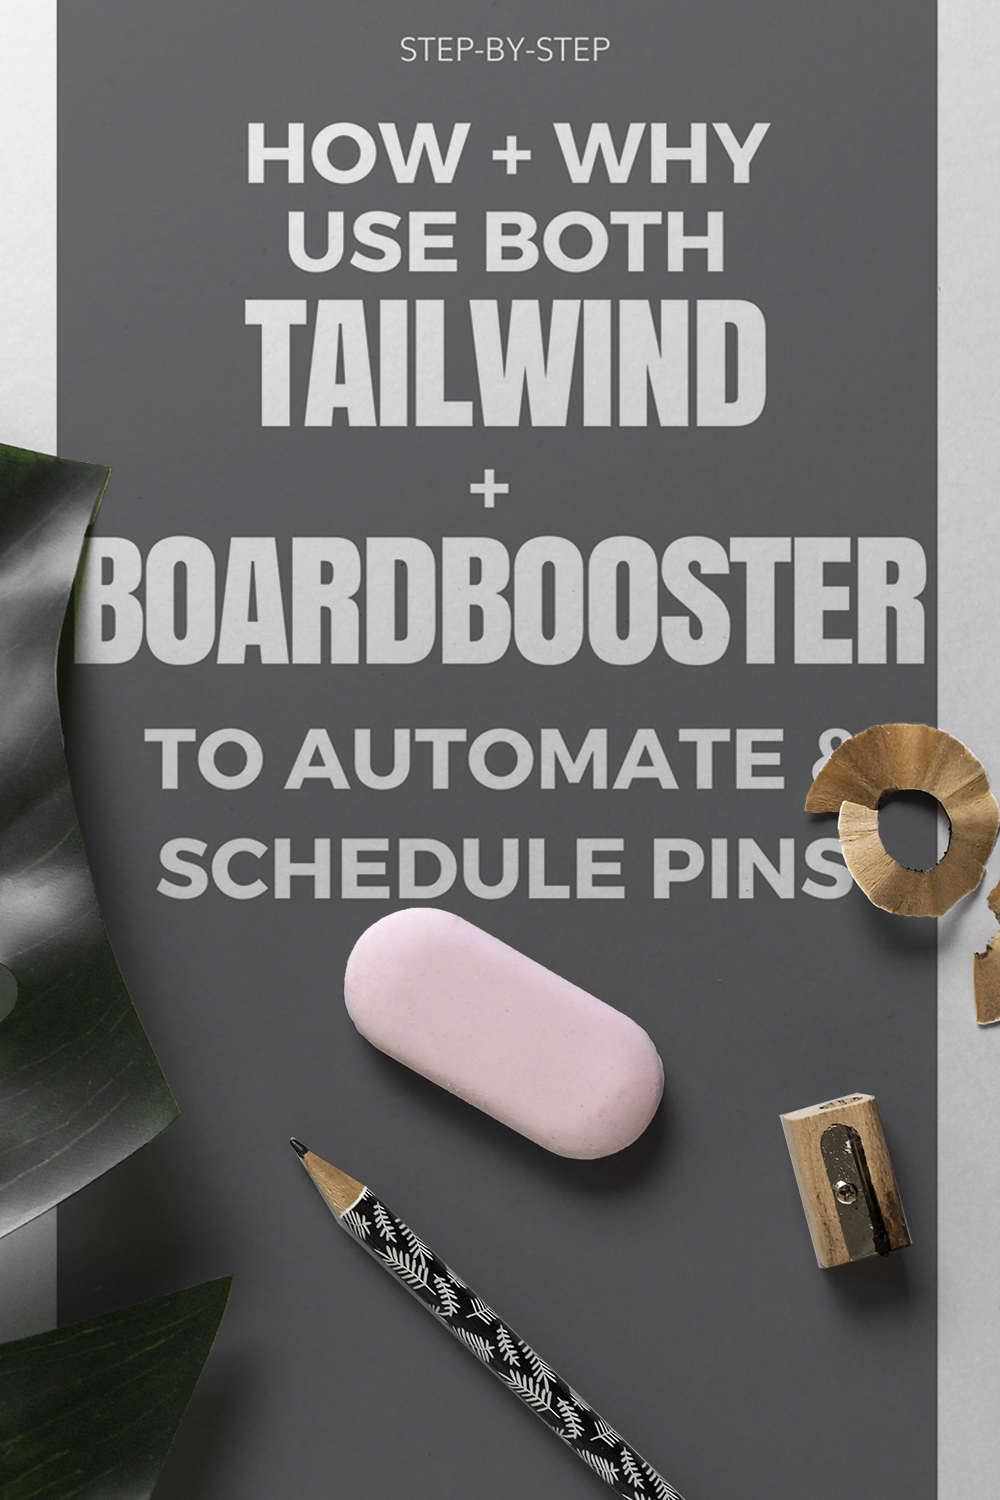 How to use Tailwind and Board booster to automate and schedule pins in your blog and business content marketing plan // get the step by step and behind the scenes (plus learn why I use both!)